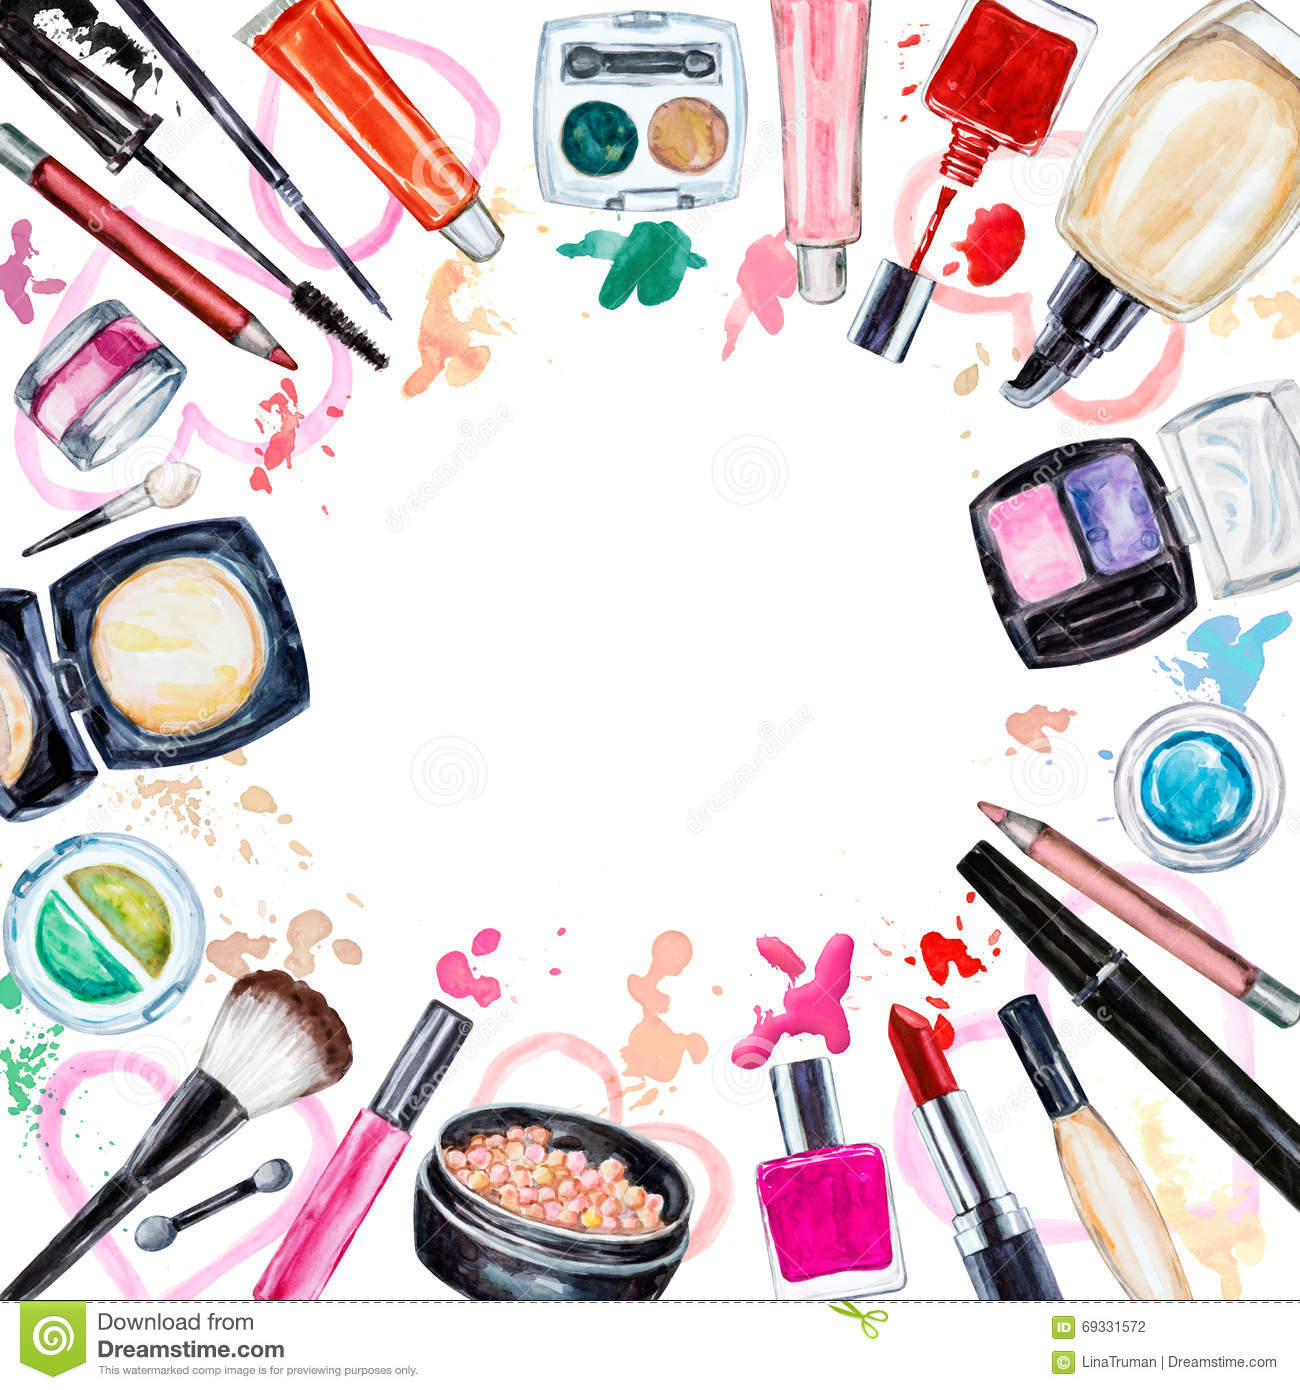 Makeup Watercolor Vidalondon